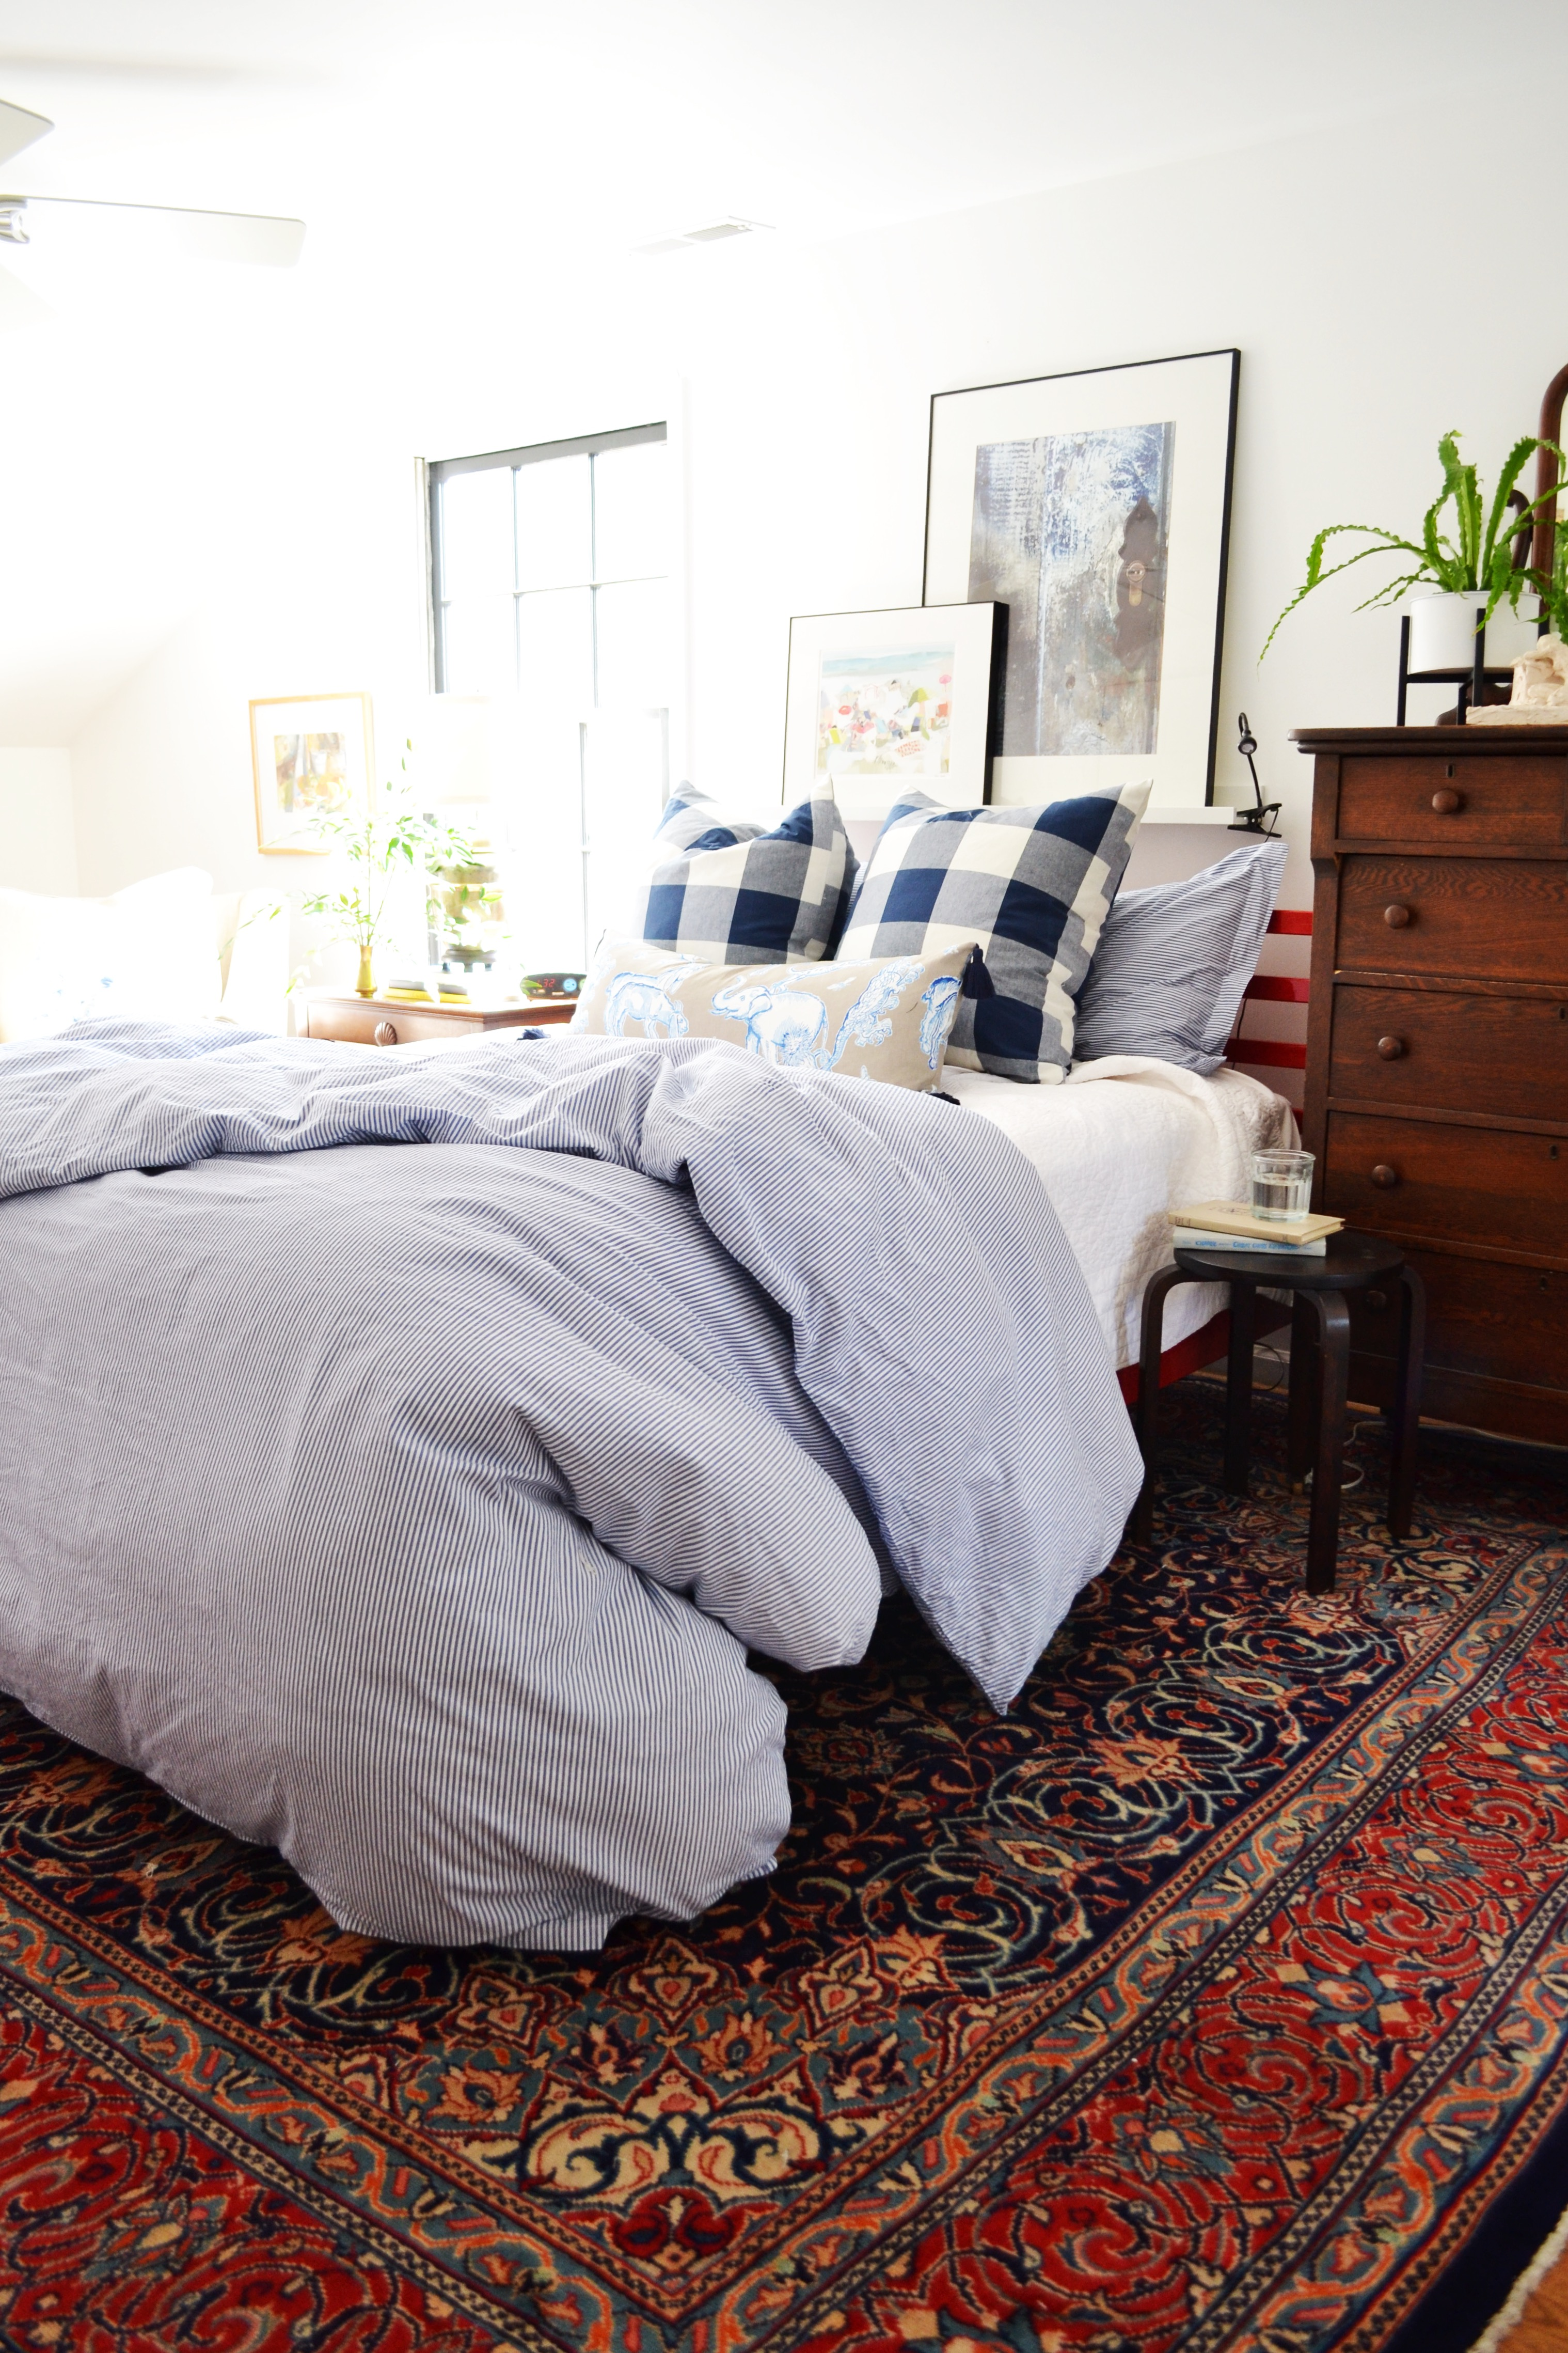 How To Make An Irresily Comfortable Bed Cate Holcombe Interiors